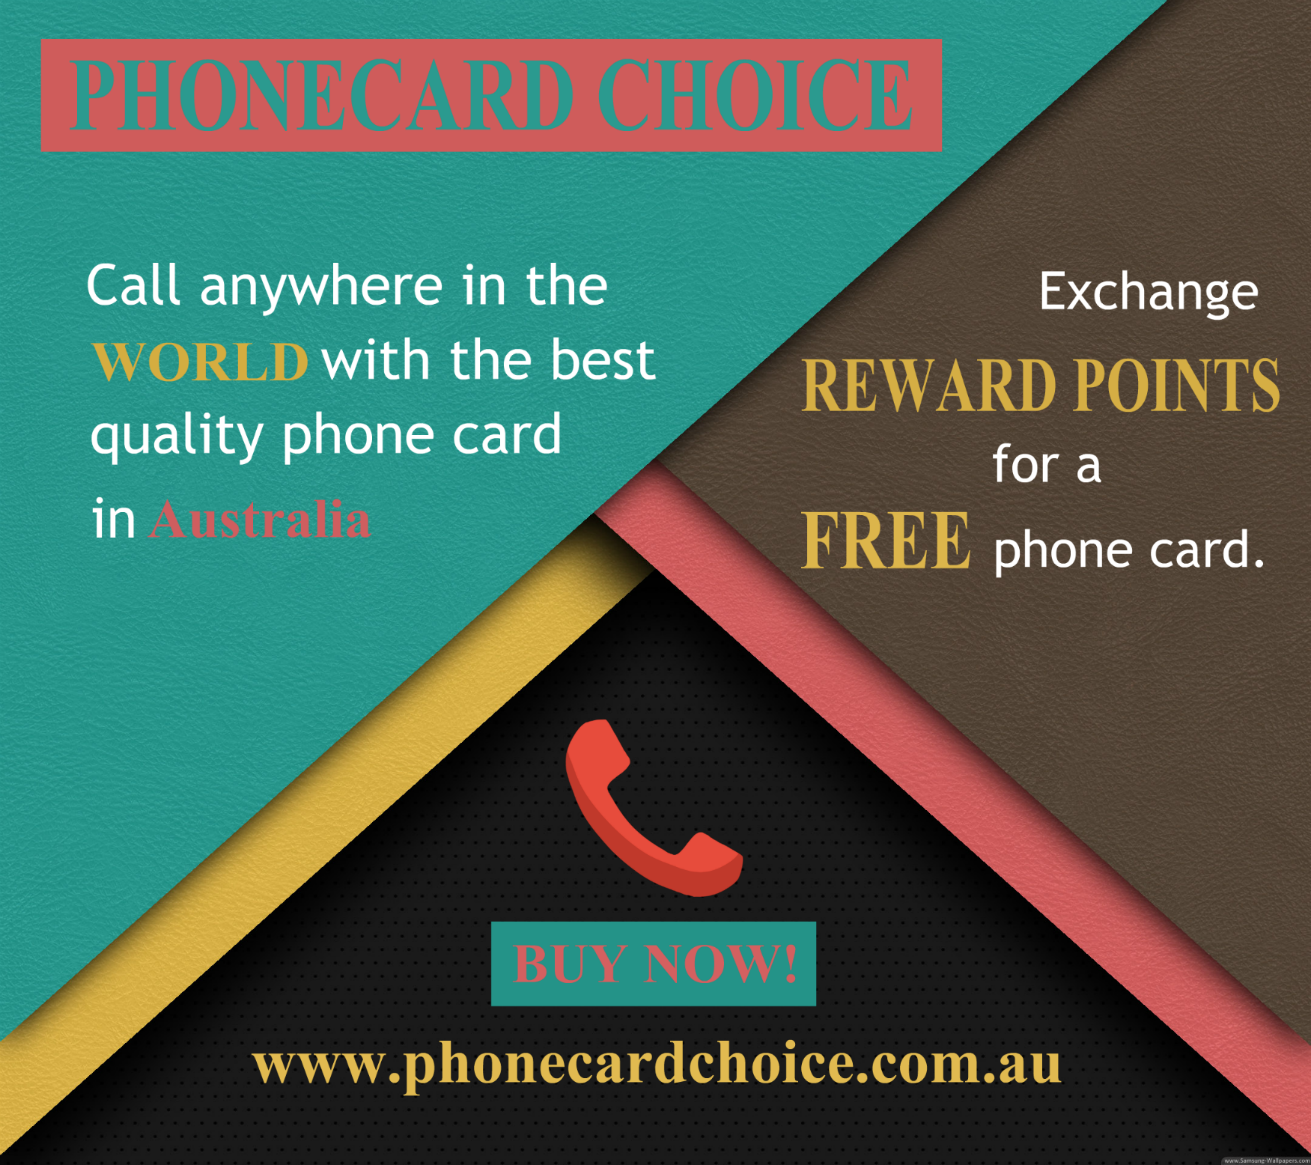 ways to find the best calling card for international calls - Best Calling Cards